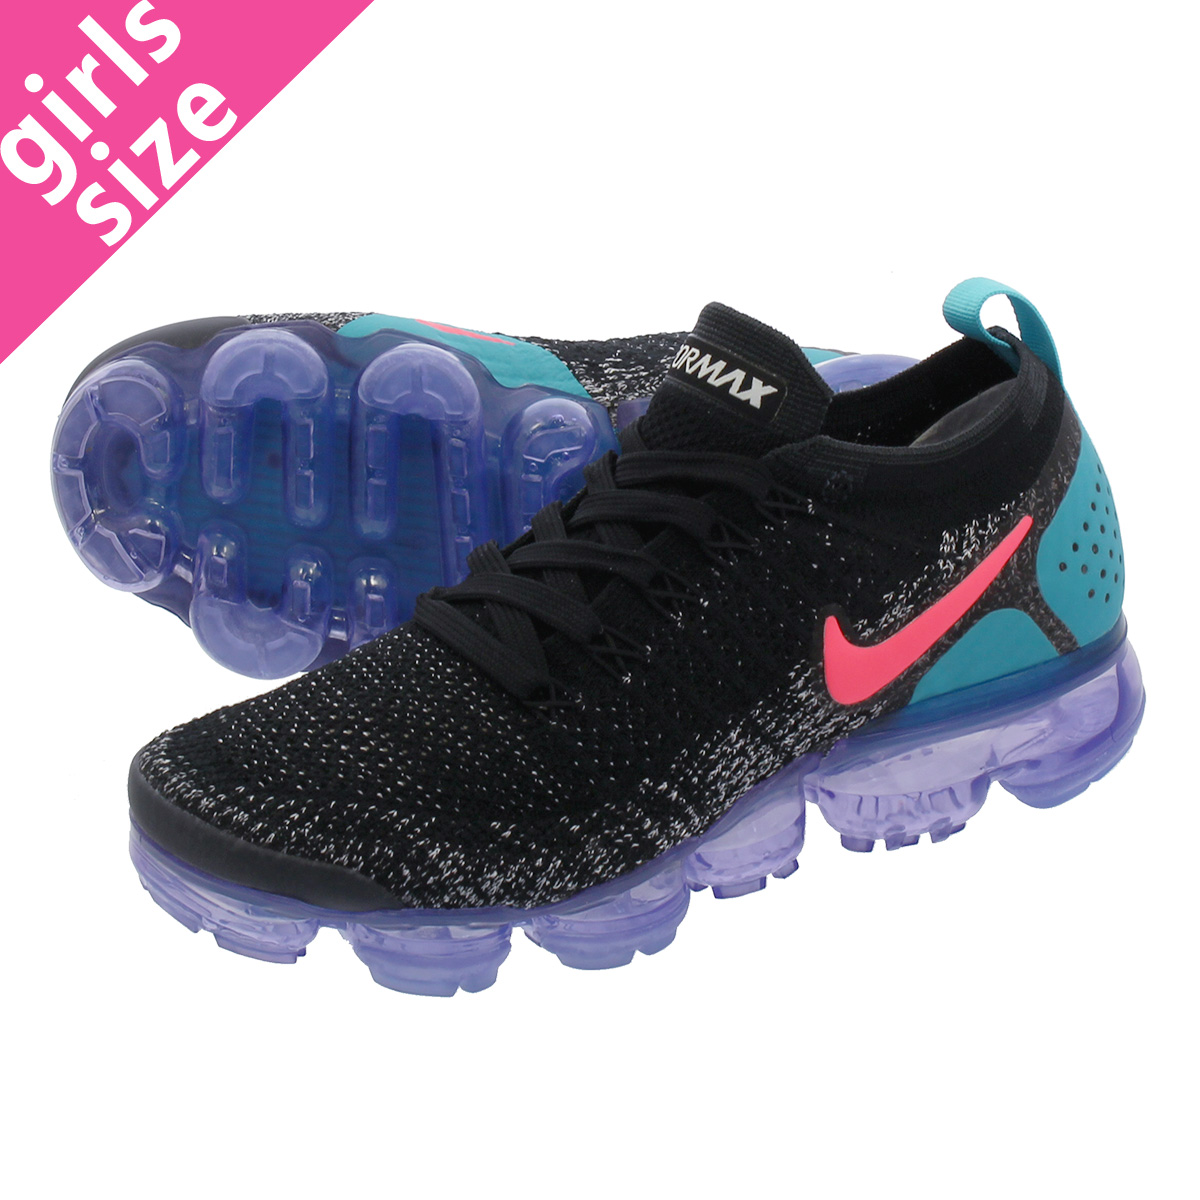 NIKE WMNS AIR VAPORMAX FLYKNIT 2 ナイキ ウィメンズ ヴェイパー マックス フライニット BLACK/HOT PUNCH/CACTUS 942843-003